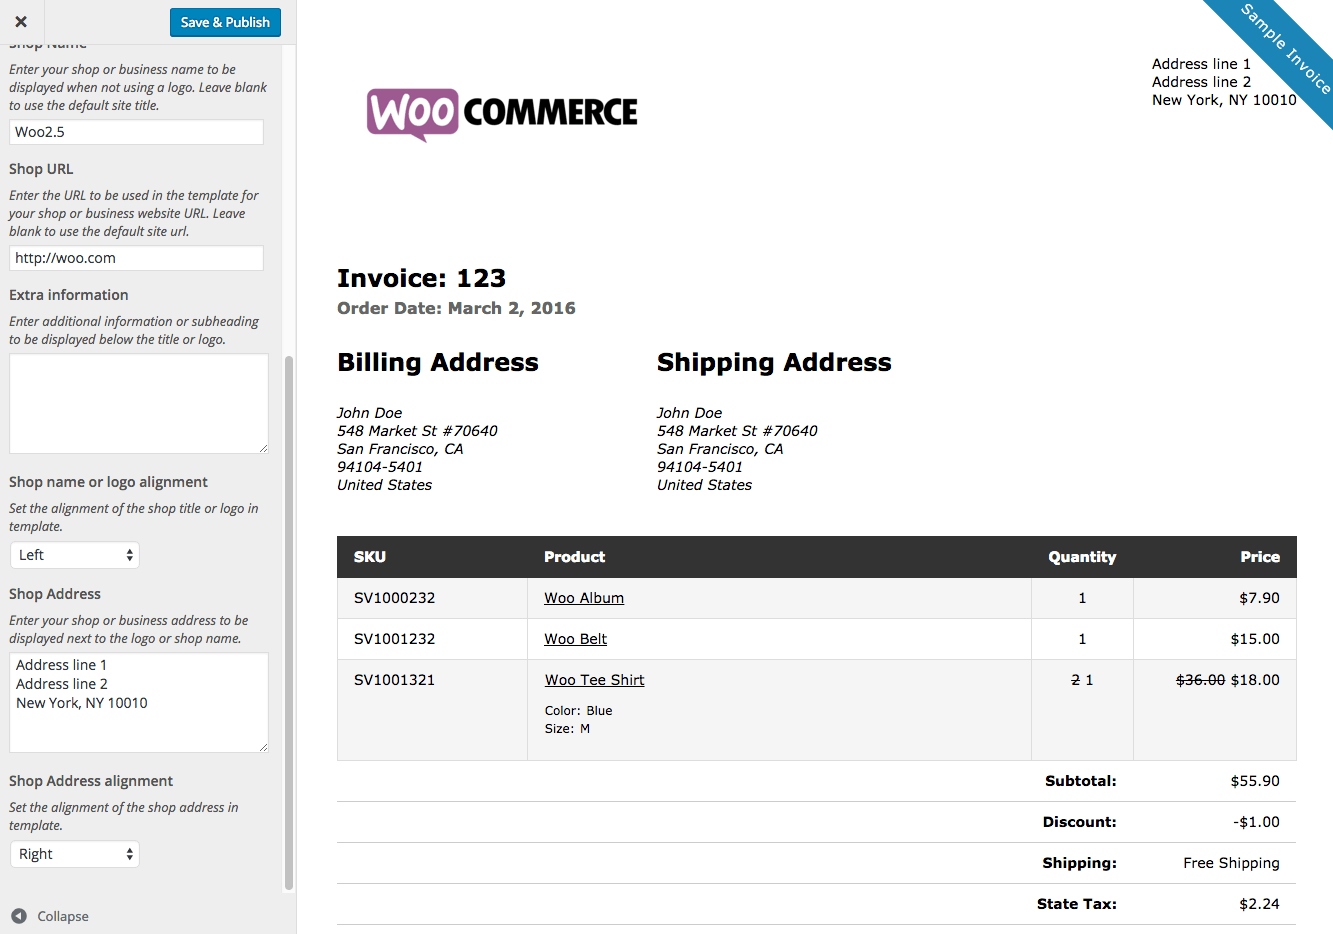 Aaaaeroincus  Marvelous Woocommerce Print Invoices Amp Packing Lists  Woocommerce Docs With Fascinating Woocommerce Print Invoices  Packing Lists Customizer With Easy On The Eye Ipad Invoice App Also Invoice For Free In Addition Invoice Finance Company And Invoicing Service As Well As Invoice Dealers Additionally  Honda Civic Invoice Price From Docswoocommercecom With Aaaaeroincus  Fascinating Woocommerce Print Invoices Amp Packing Lists  Woocommerce Docs With Easy On The Eye Woocommerce Print Invoices  Packing Lists Customizer And Marvelous Ipad Invoice App Also Invoice For Free In Addition Invoice Finance Company From Docswoocommercecom